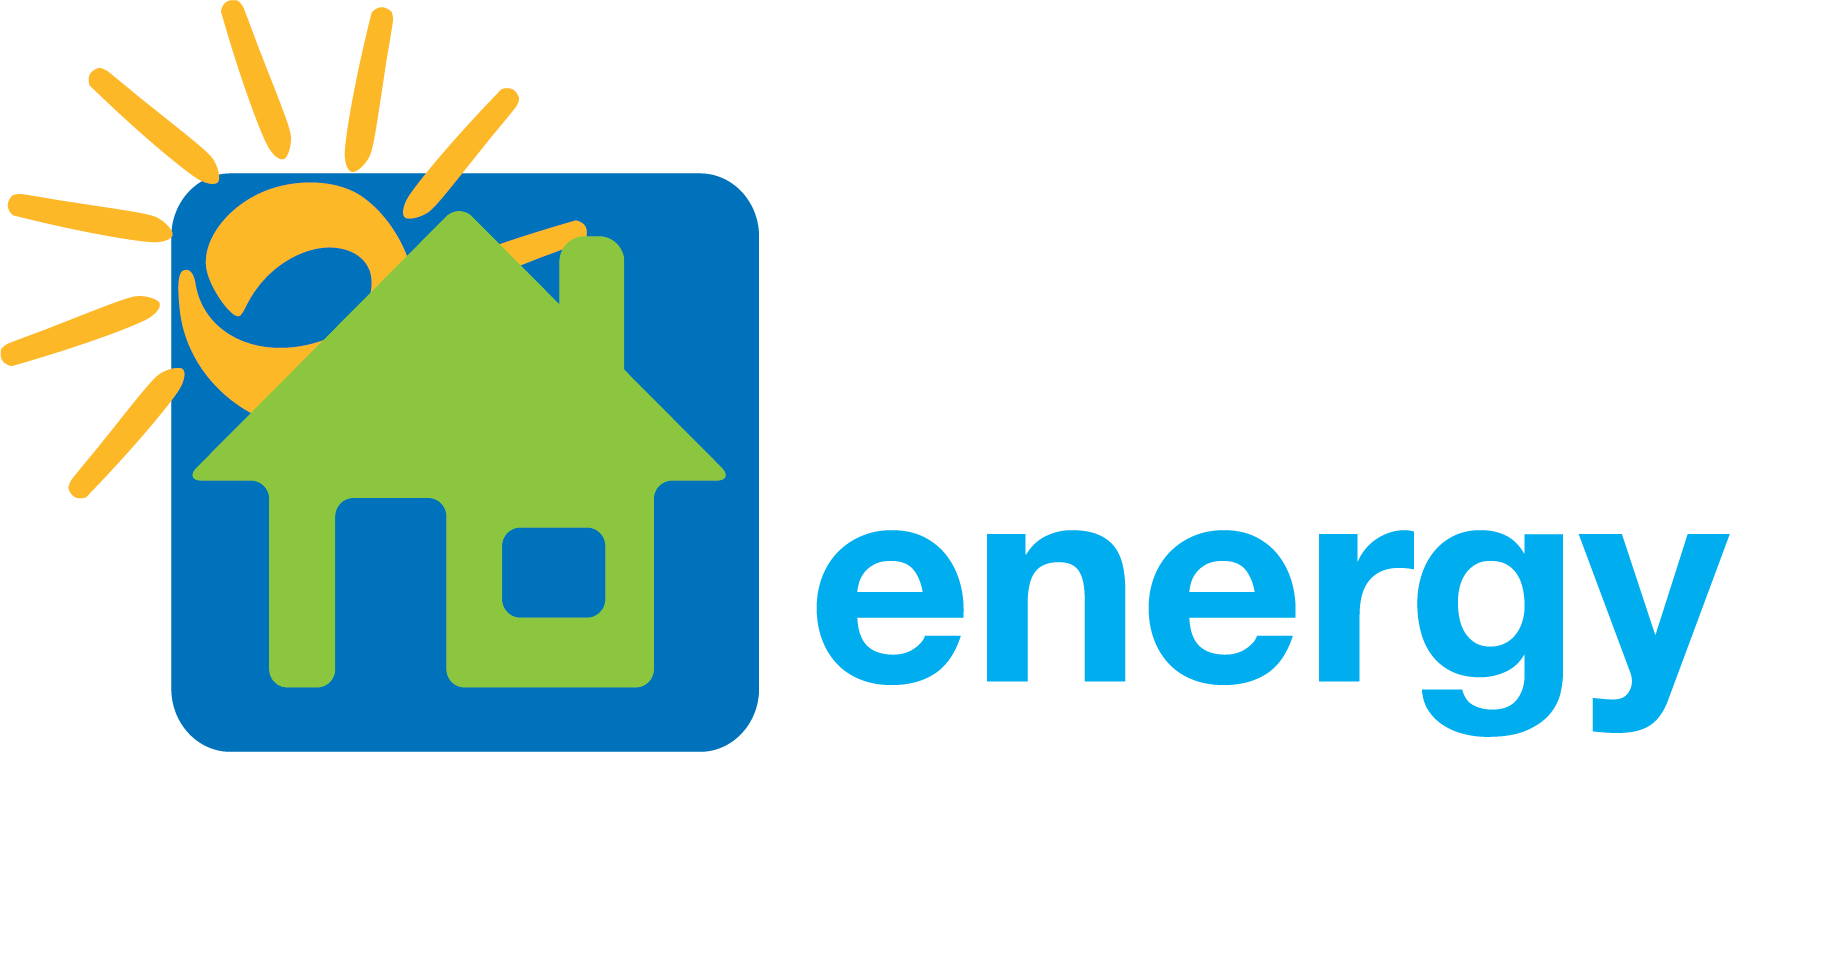 Link to Energy logo